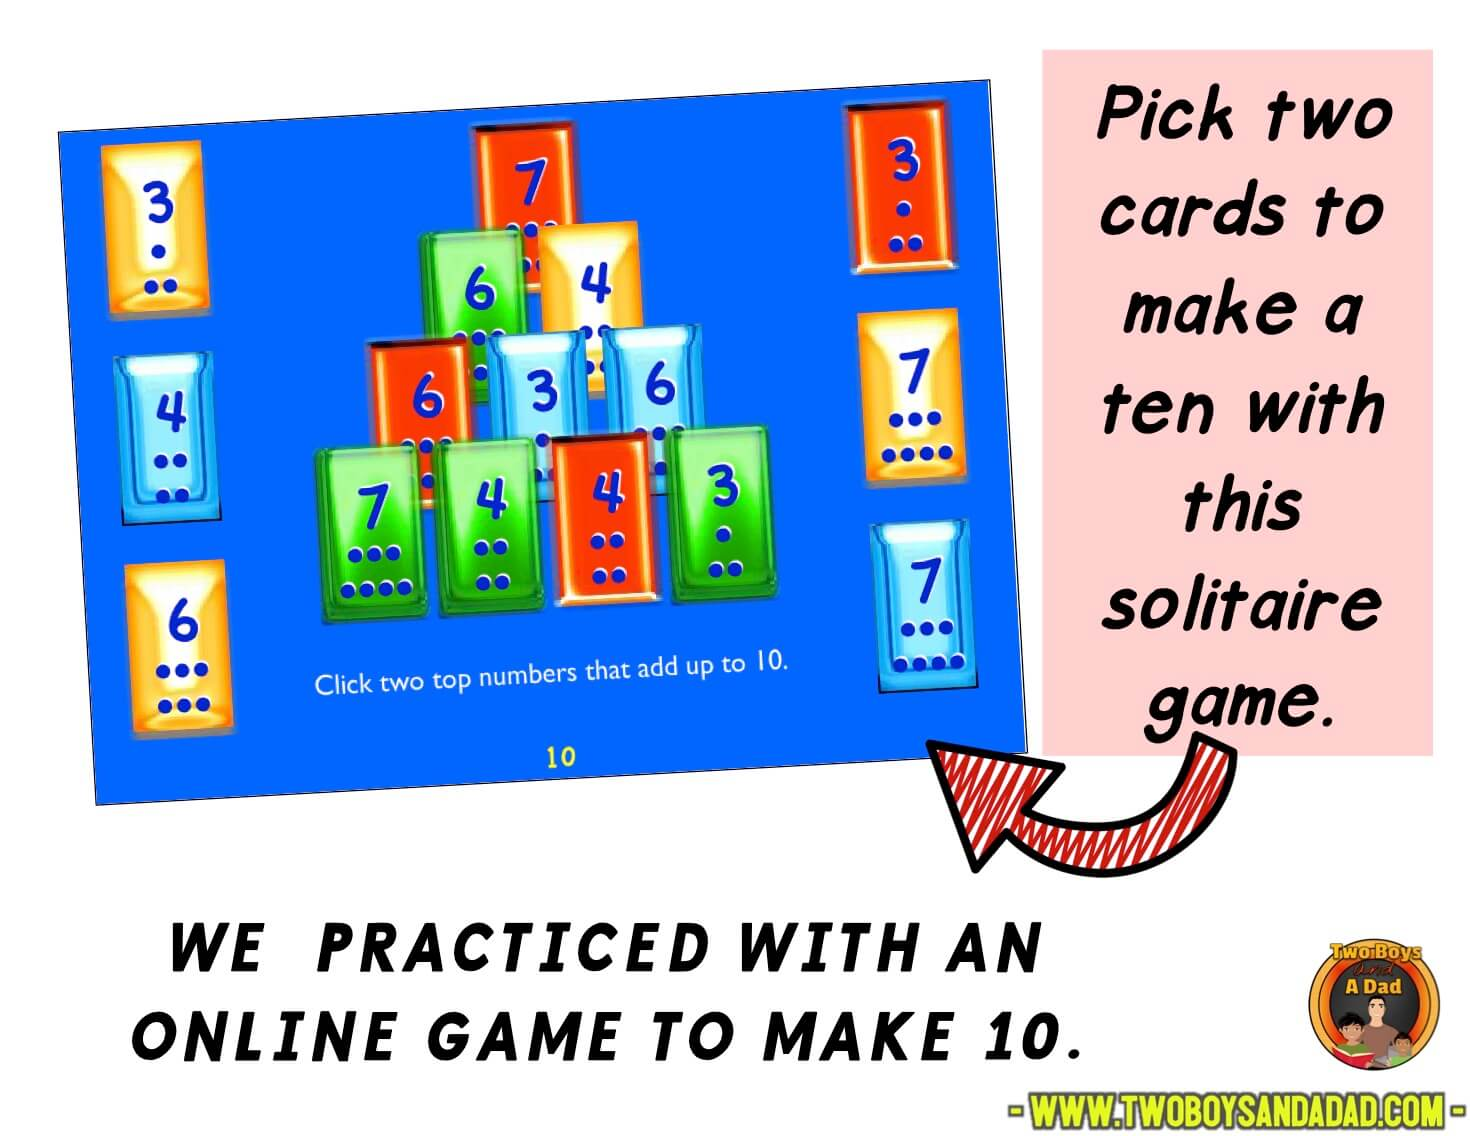 Online game to practice making a ten